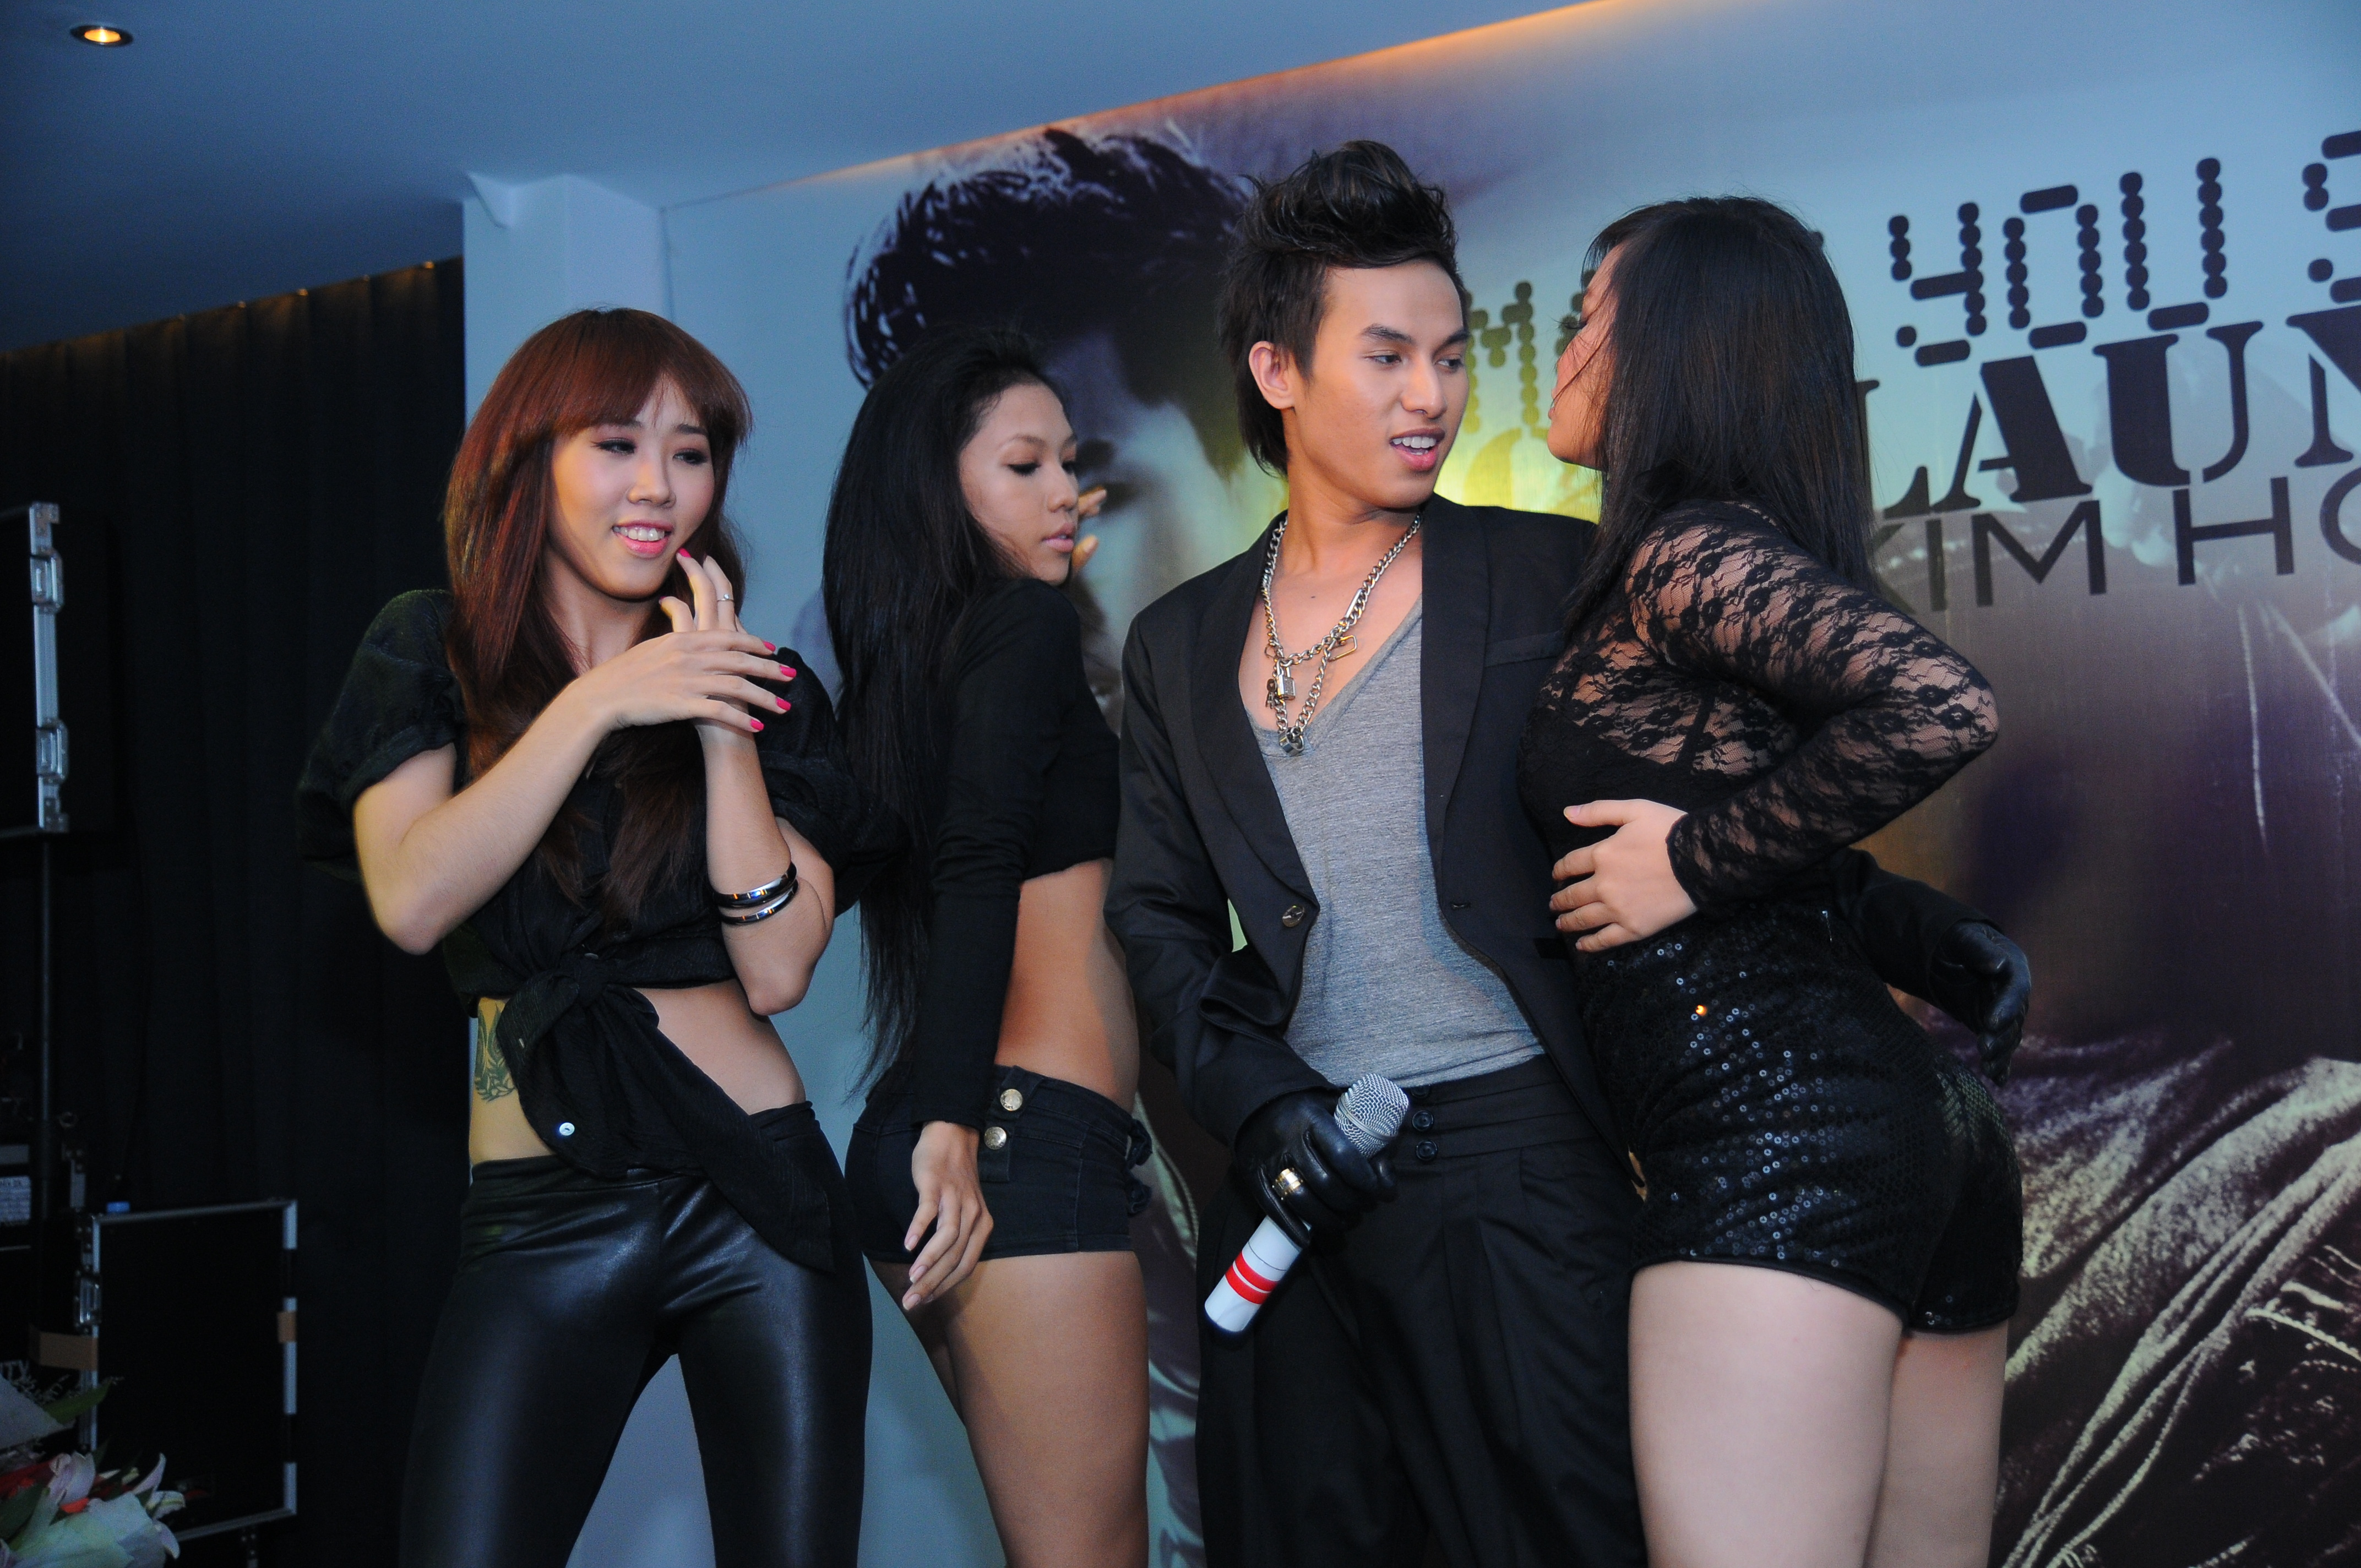 alx kim hoang album release party (17) | Viet Channel